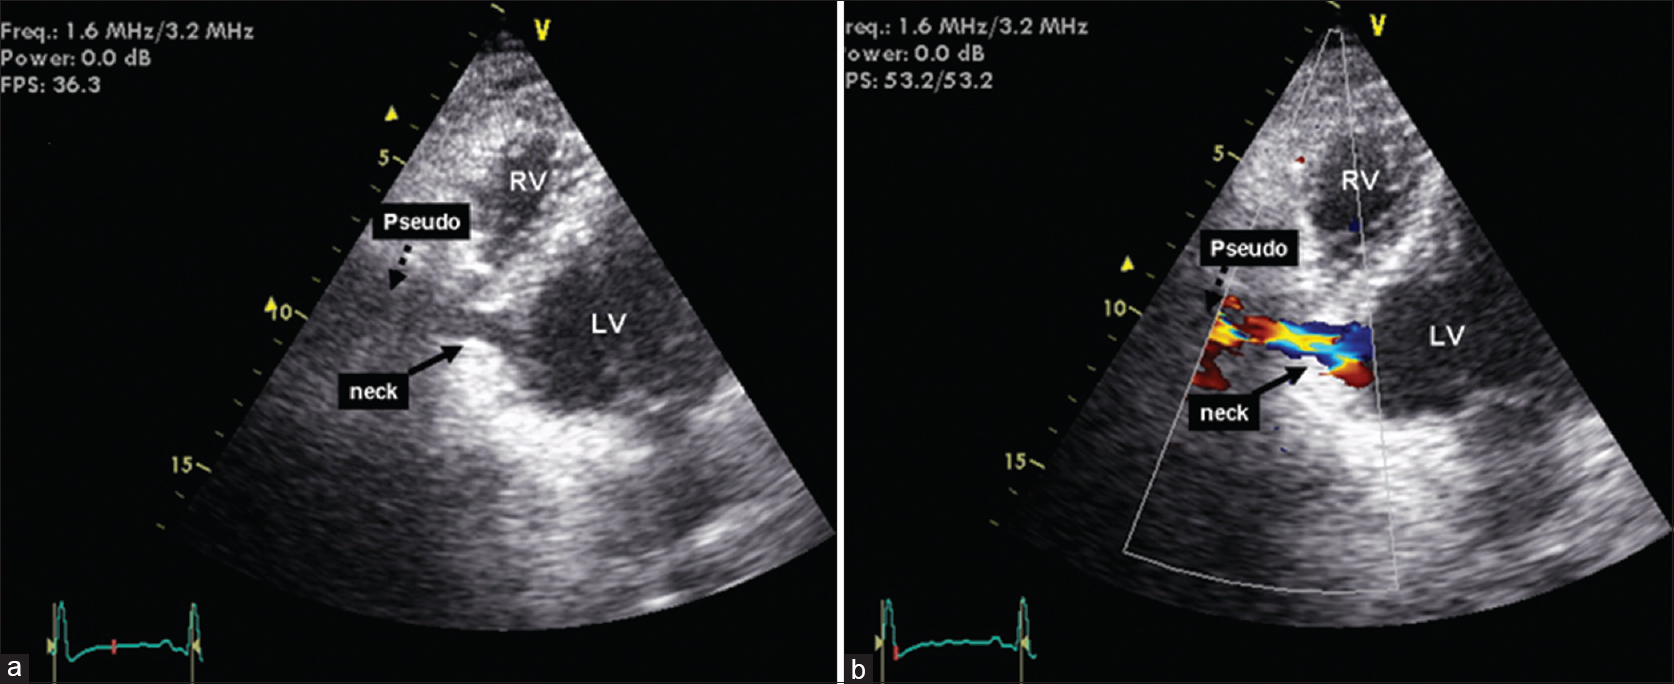 Figure 3: (a) Inferior angulation of the transducer from the 4 chamber view showed a long neck of a pseudoaneurysm connecting the inferior aneurysm to the cystic structure with (b) color Doppler confirming blood flow within this structure. LV: Left ventricle, RV: Right ventricle, Pseudo: Pseudoaneurysm